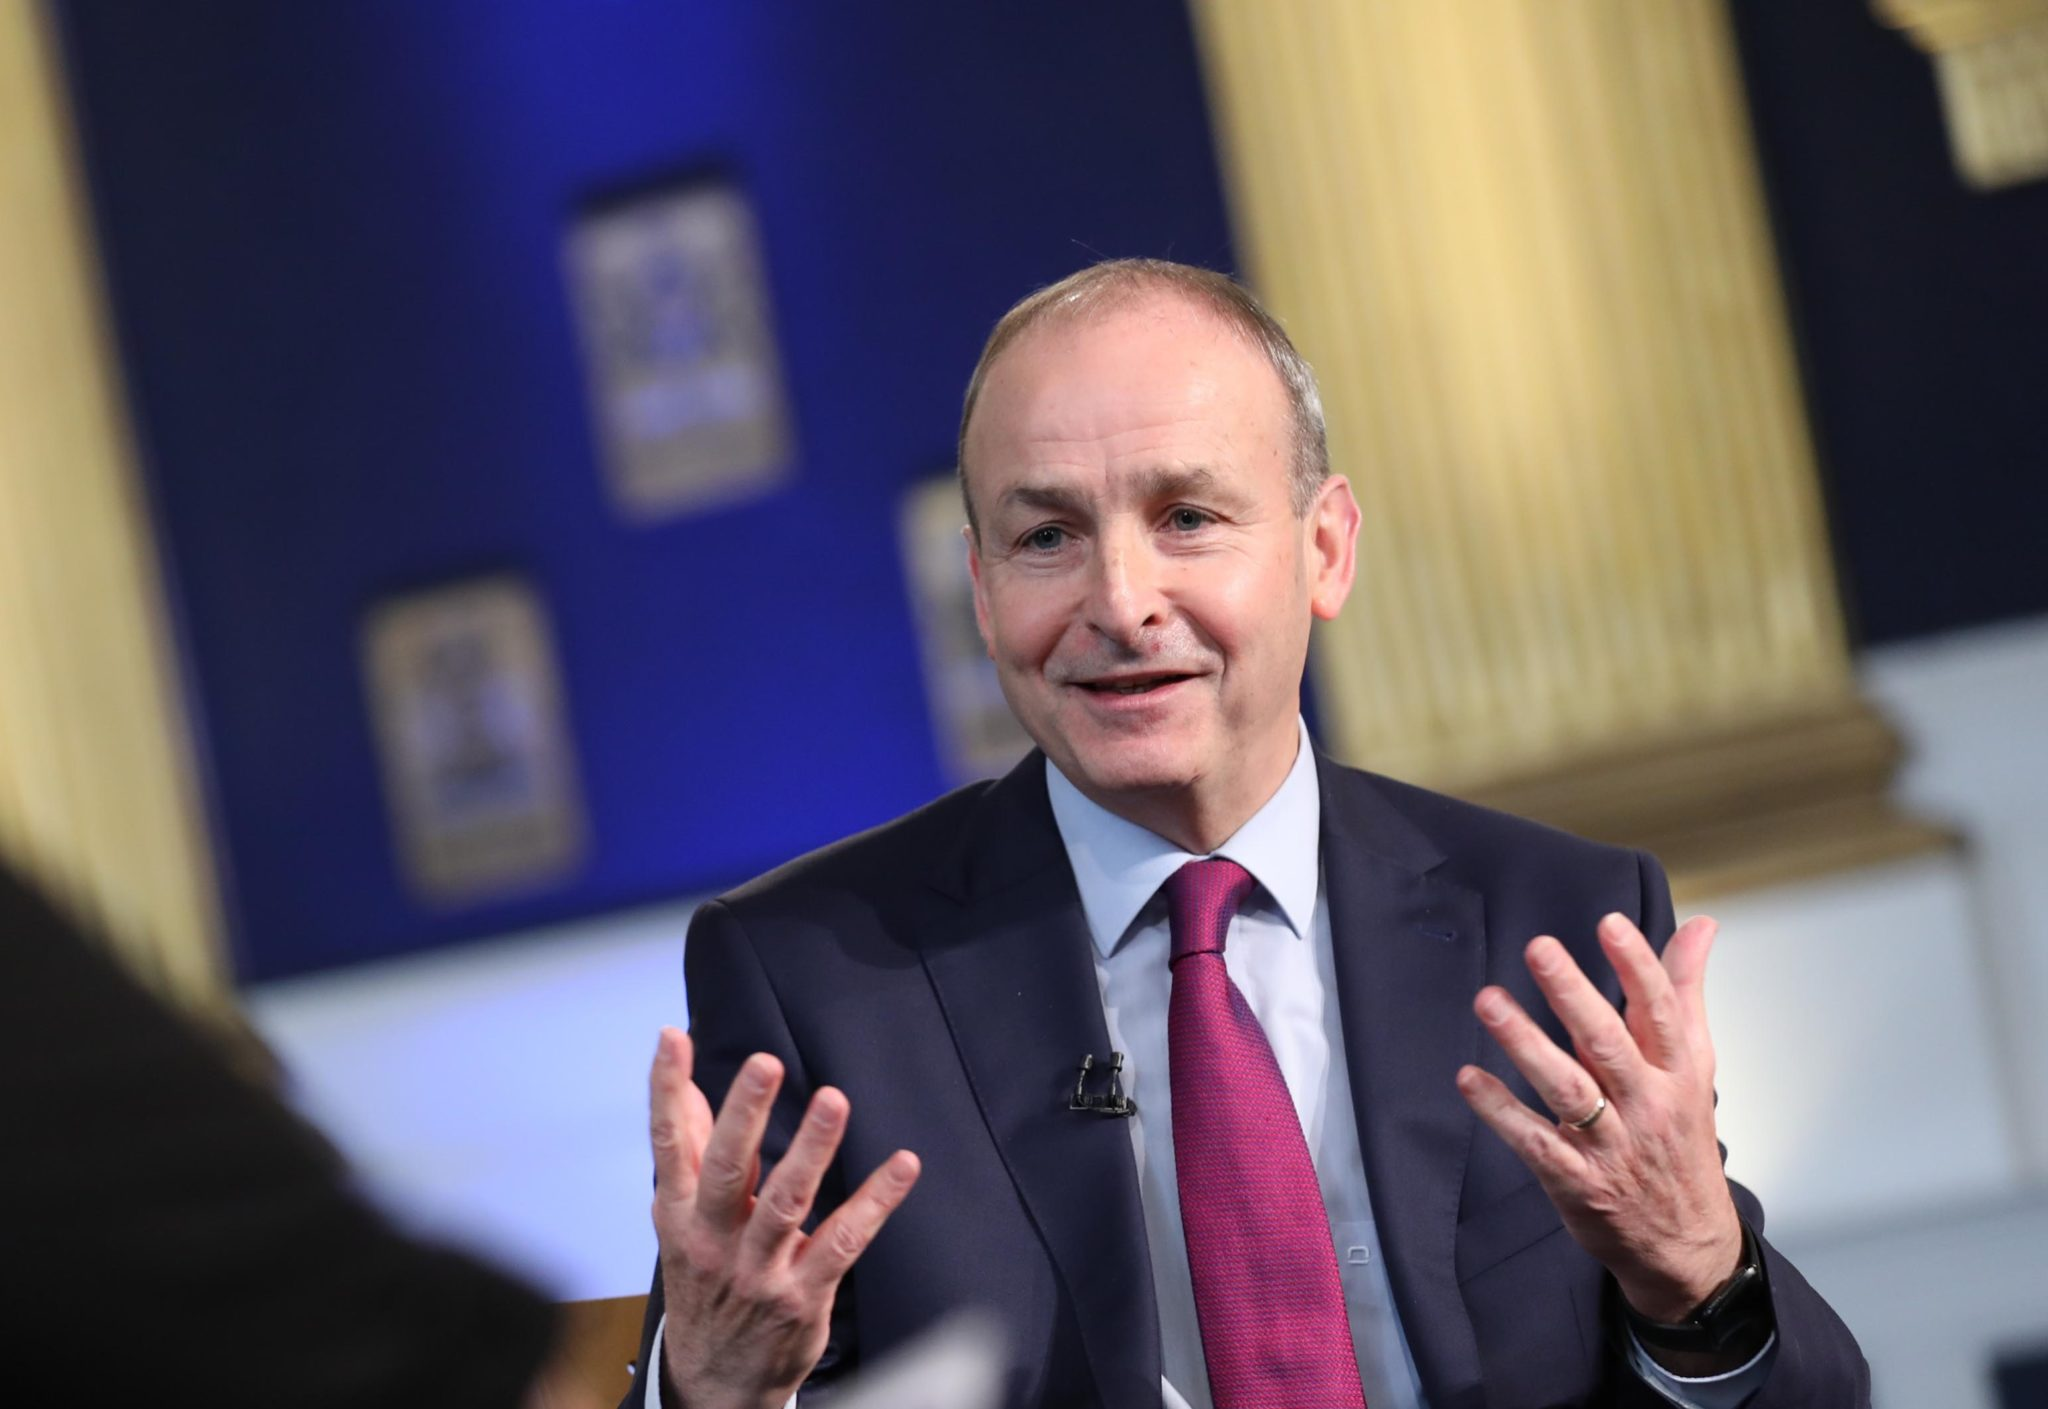 Taoiseach Michael Martin at a moderated Q&A at Dublin Castle, following an address on the Shared Island initiative in October 2020